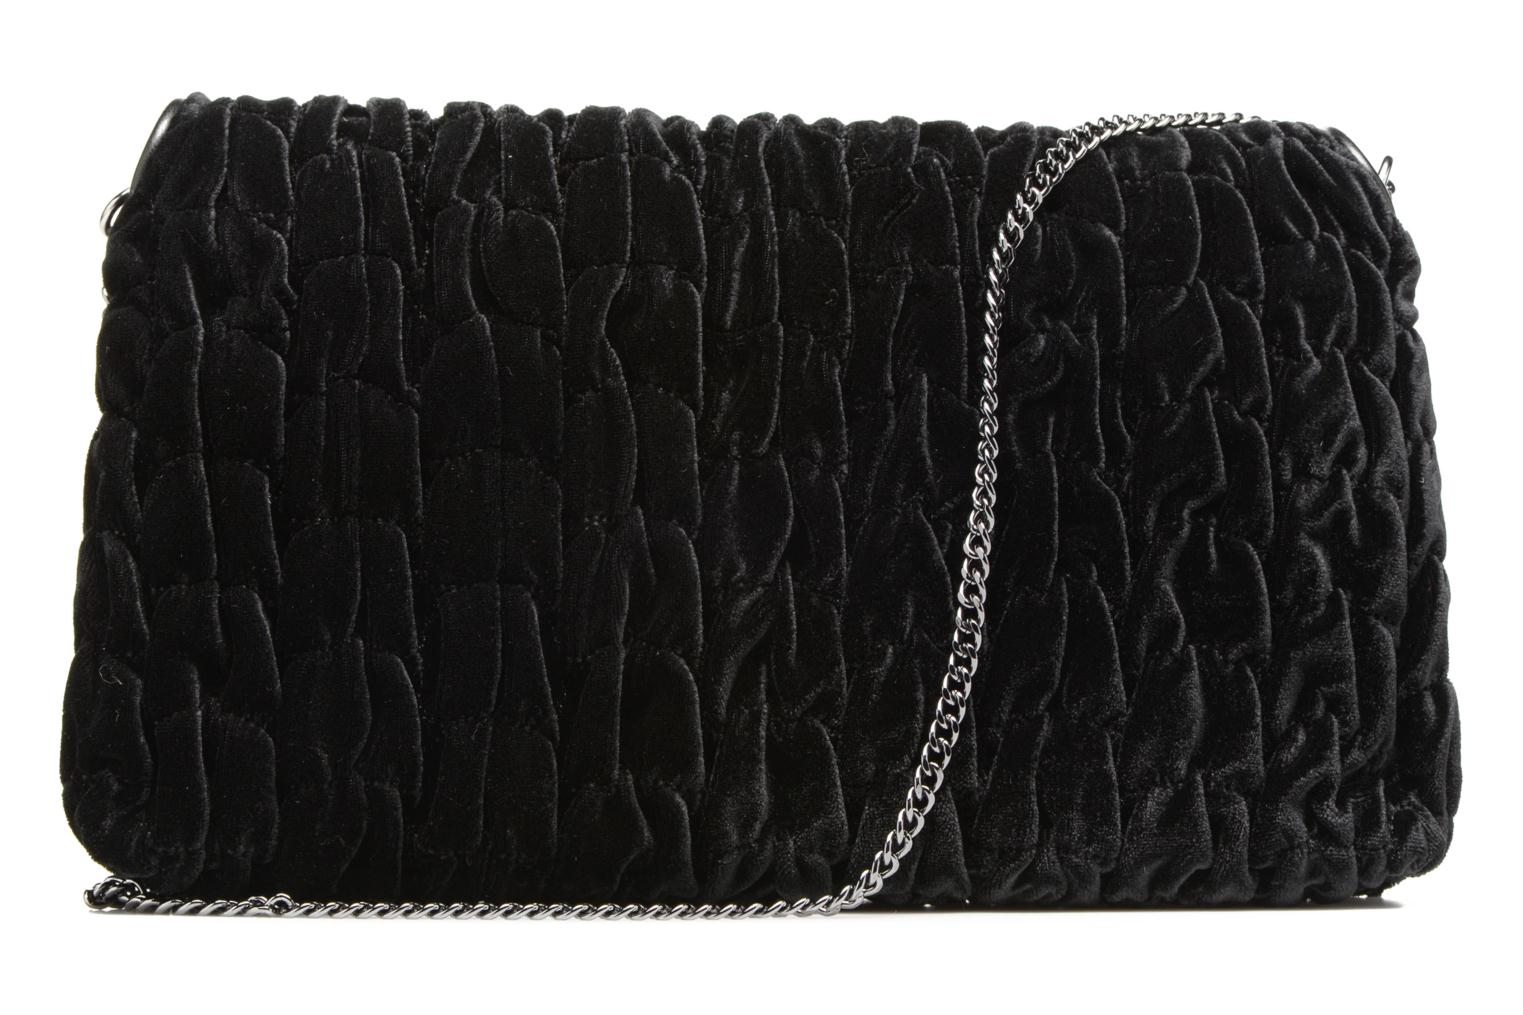 Handbags Love Moschino Pochette Chaine Velvet Black front view